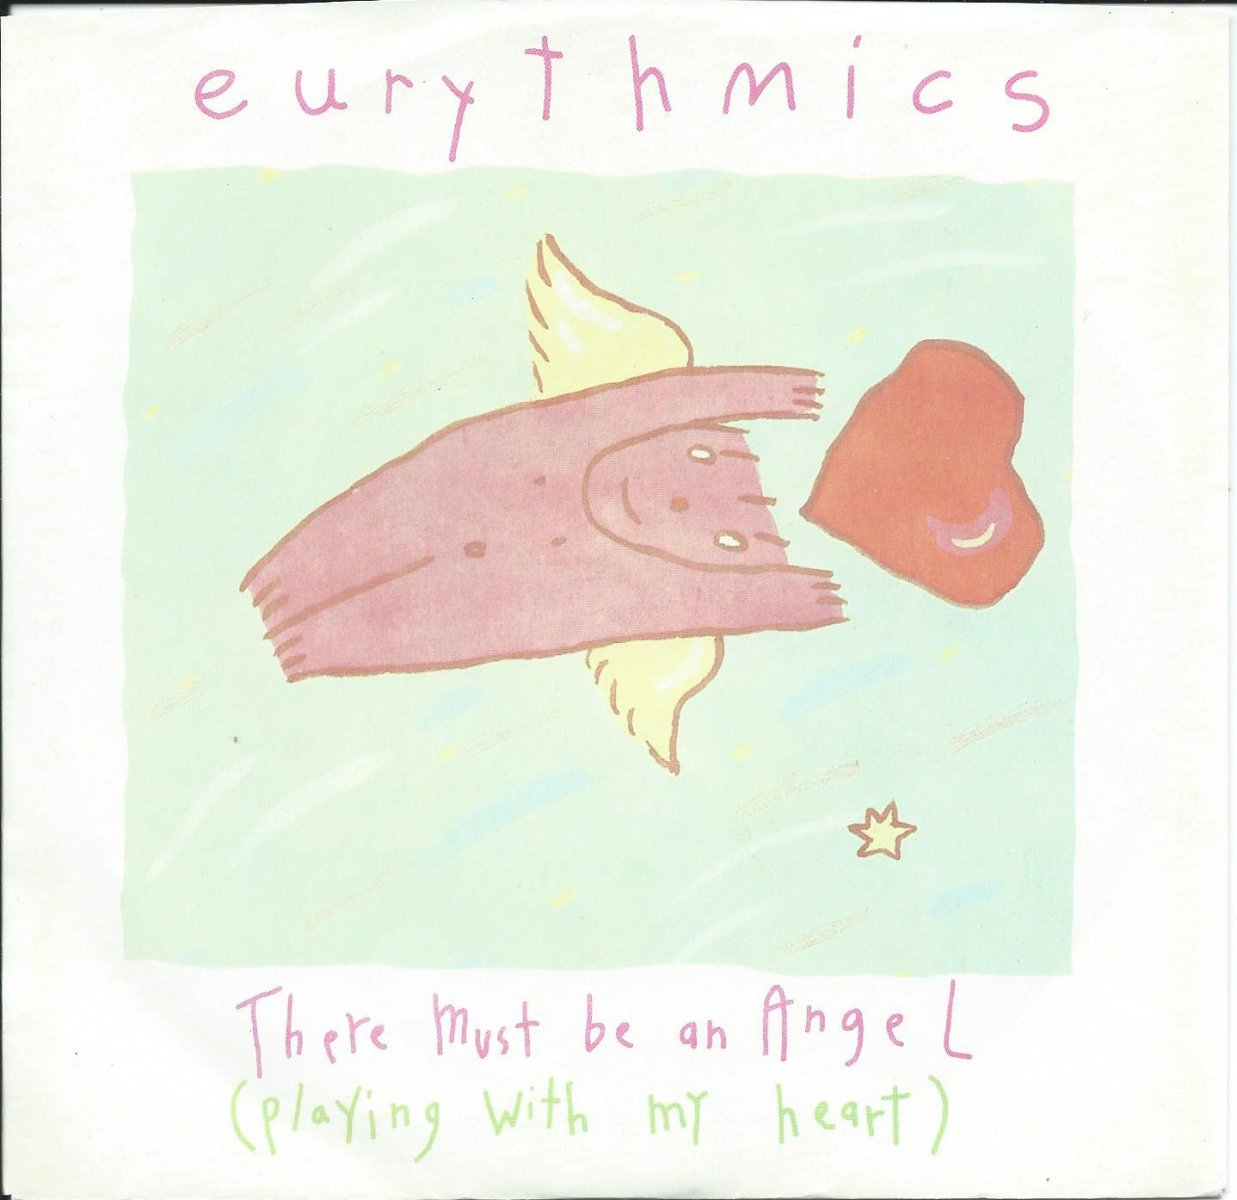 EURYTHMICS / THERE MUST BE AN ANGEL (PLAYING WITH MY HEART) (7